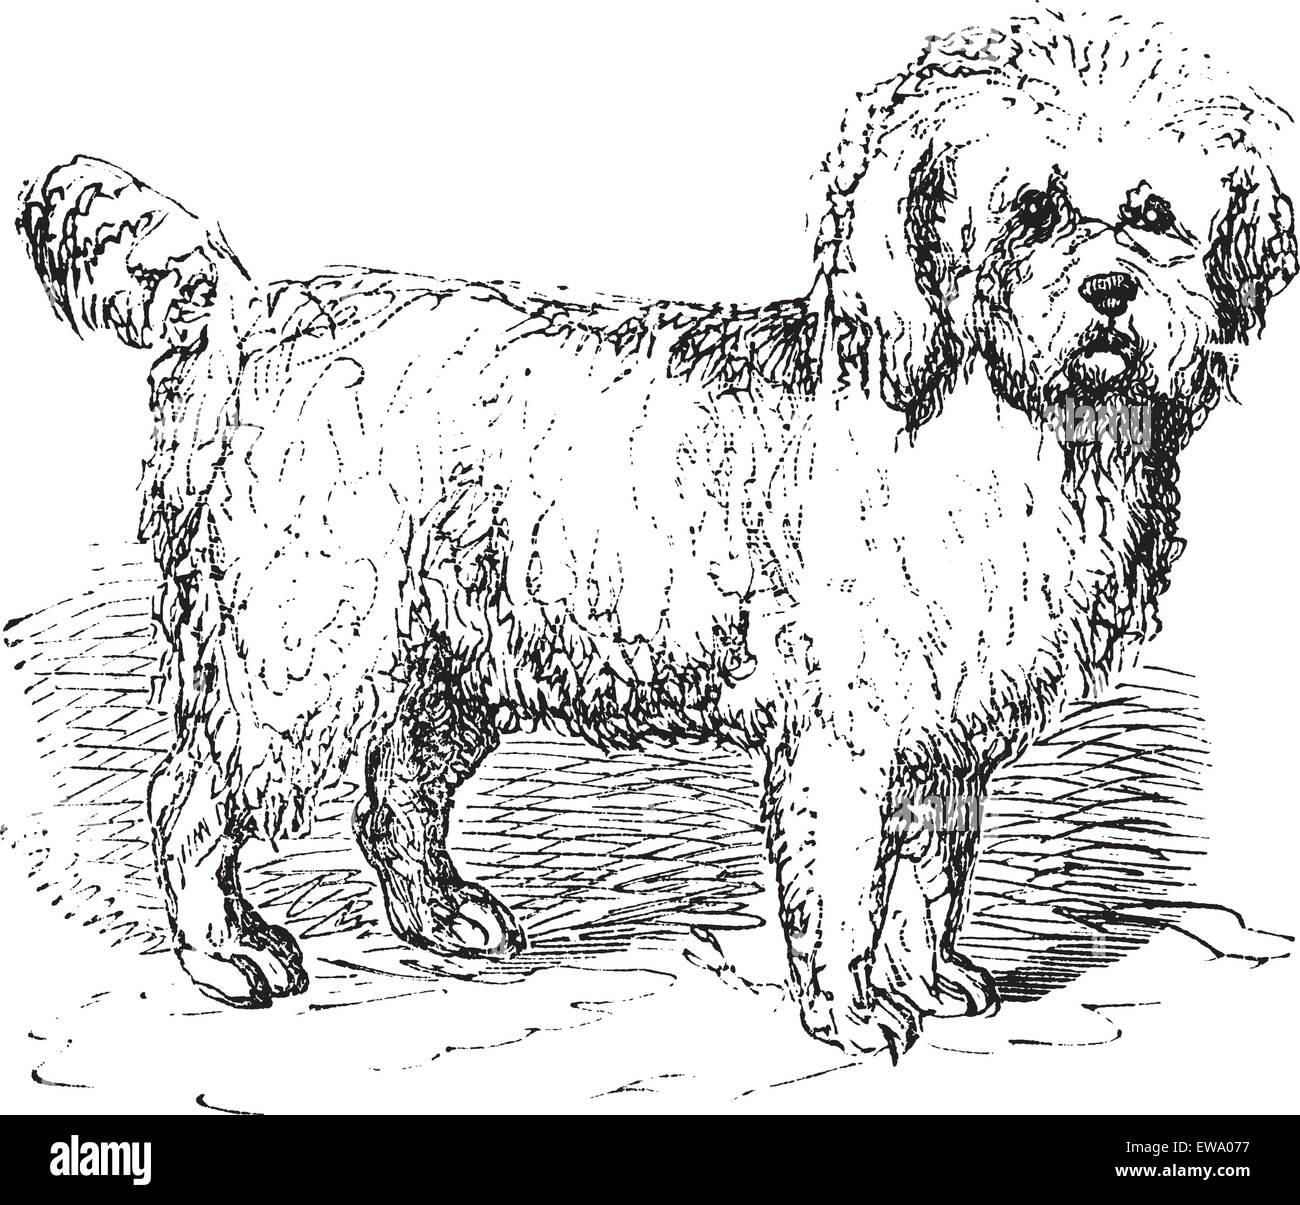 Barbet or Canis lupus familiaris, vintage engraving. Old engraved illustration of a Barbet. - Stock Image